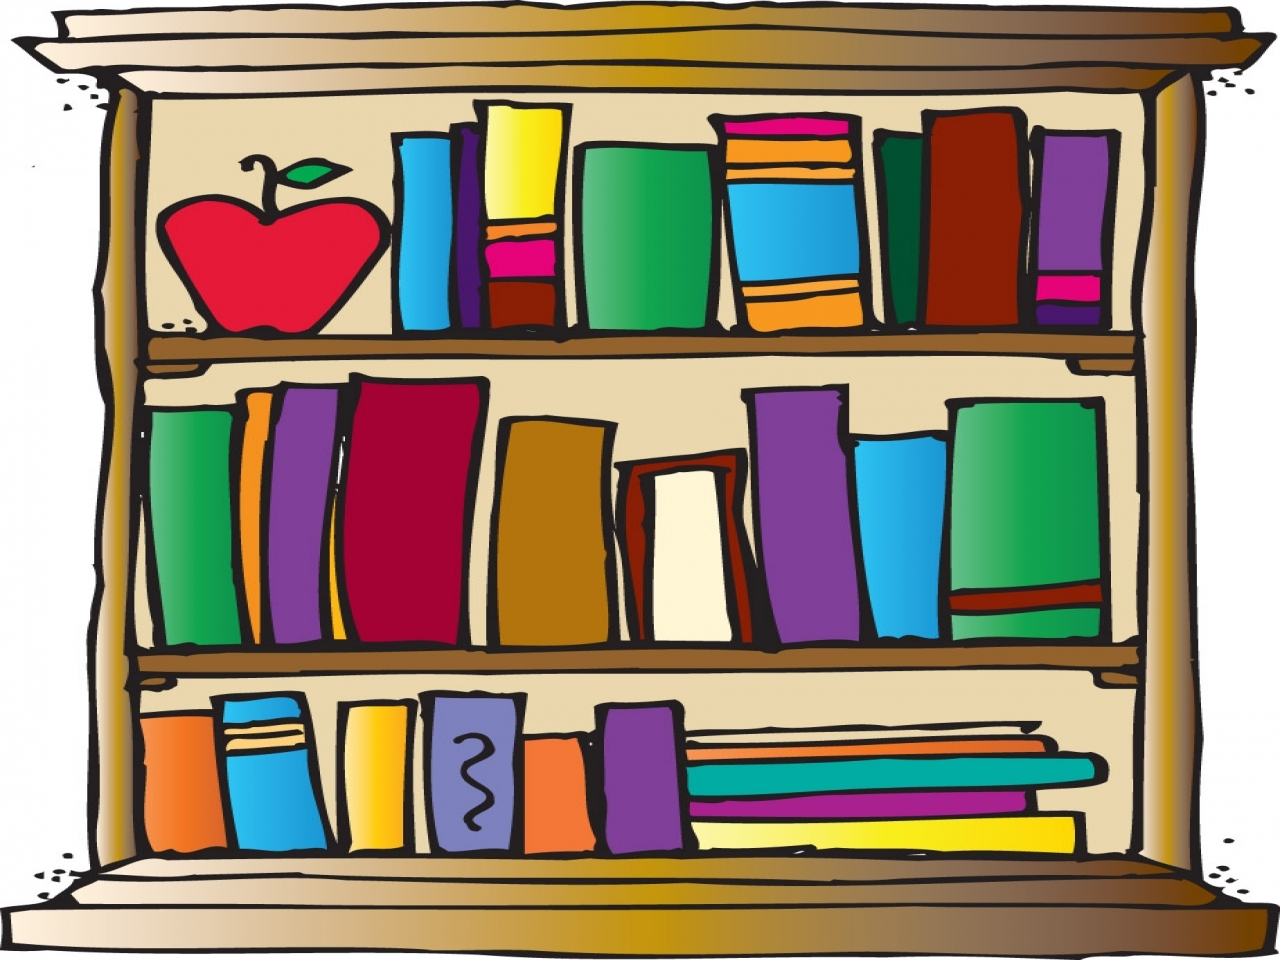 Bookshelf clipart Best of Wood Bookshelf Cliparts Free Download Clip.